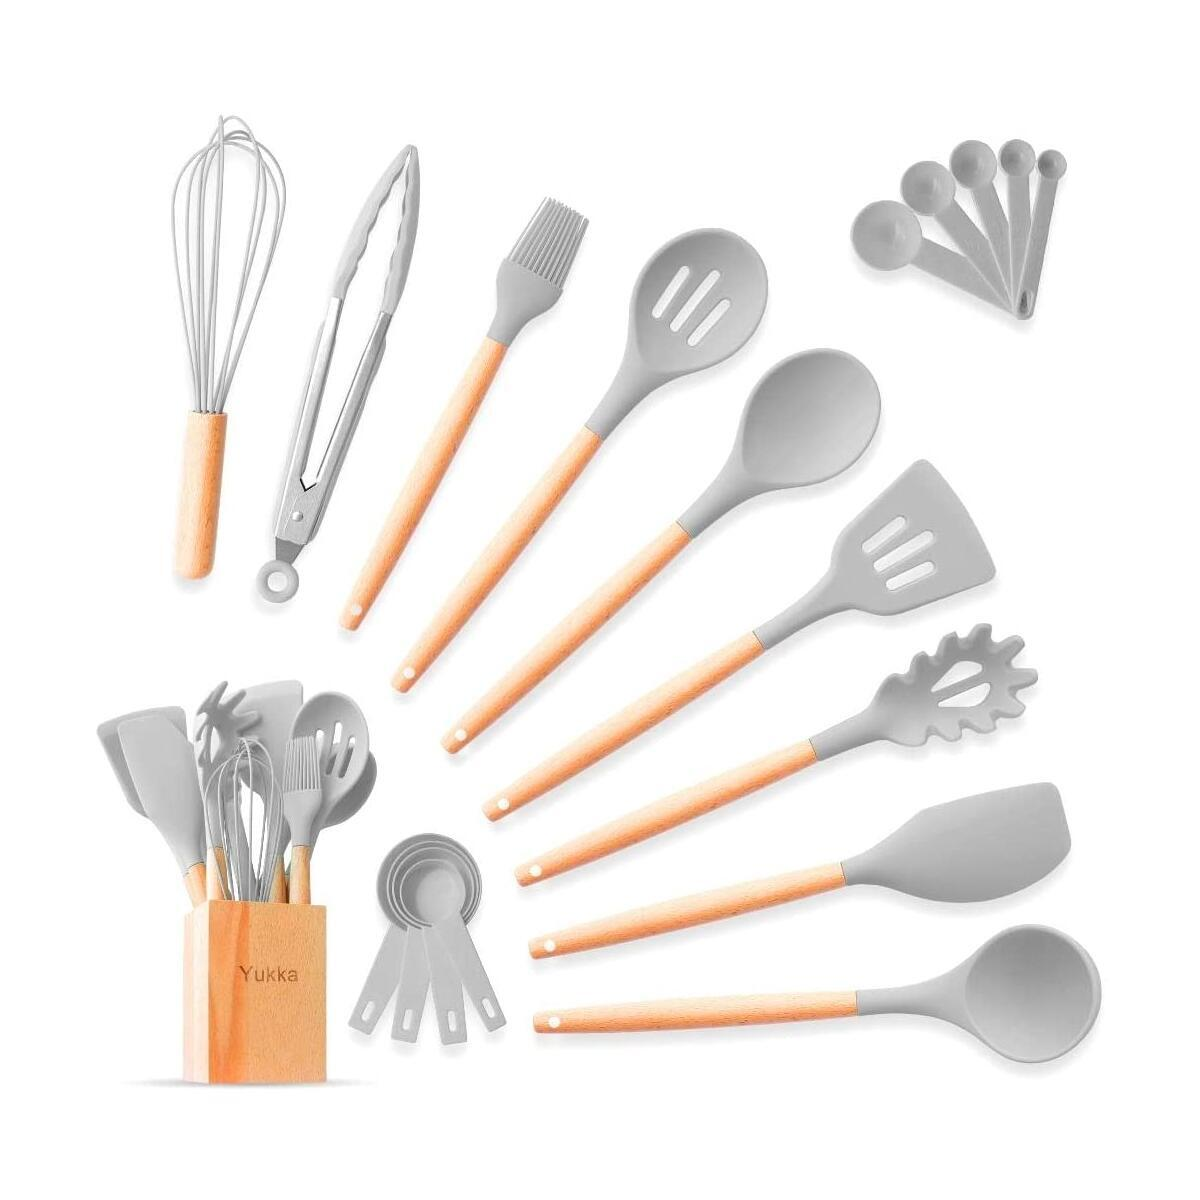 Silicone Kitchen Utensils Cooking Set 20pcs color grey